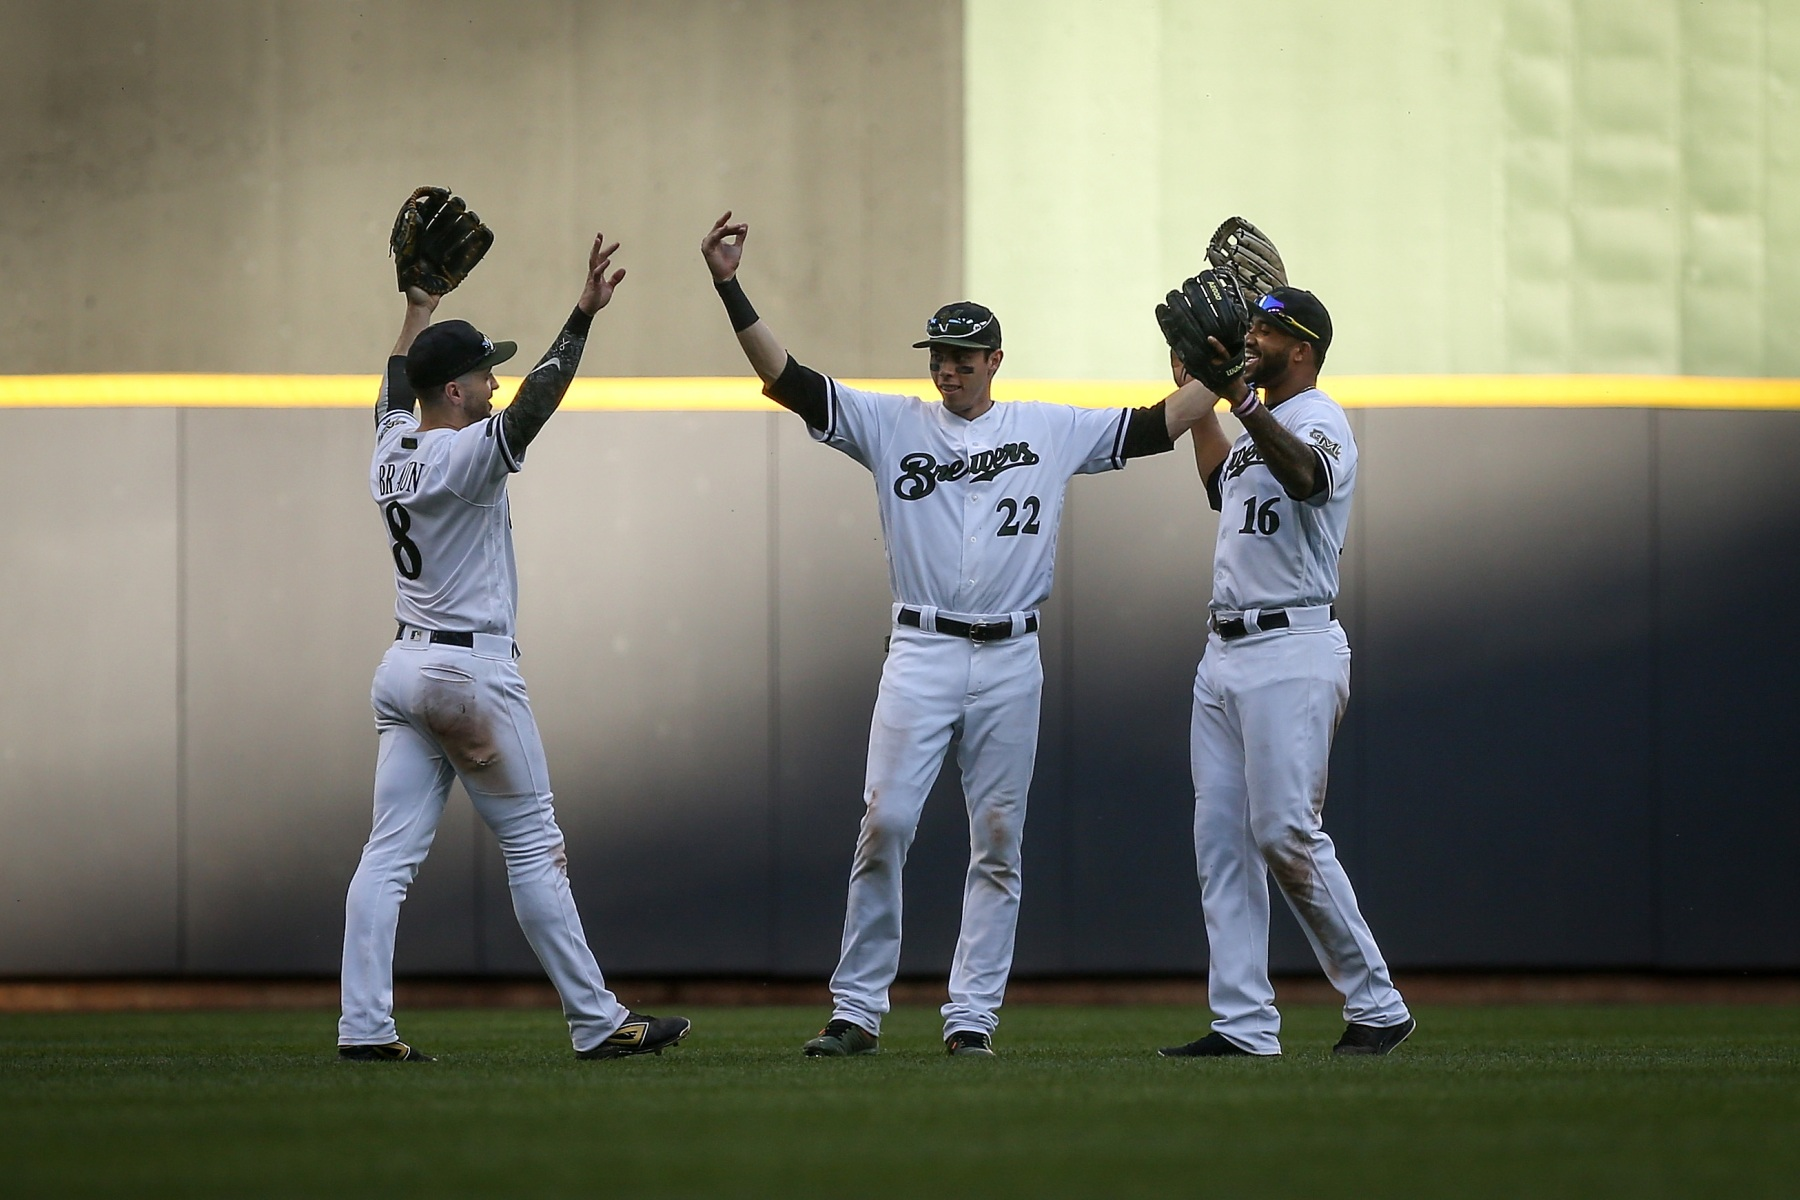 Ryan Braun #8, Christian Yelich #22 and Domingo Santana #16 of the Milwaukee Brewers celebrate after beating the New York Mets 17-6 at Miller Park on May 26, 2018 in Milwaukee, Wisconsin. (Photo by Dylan Buell/Getty Images)